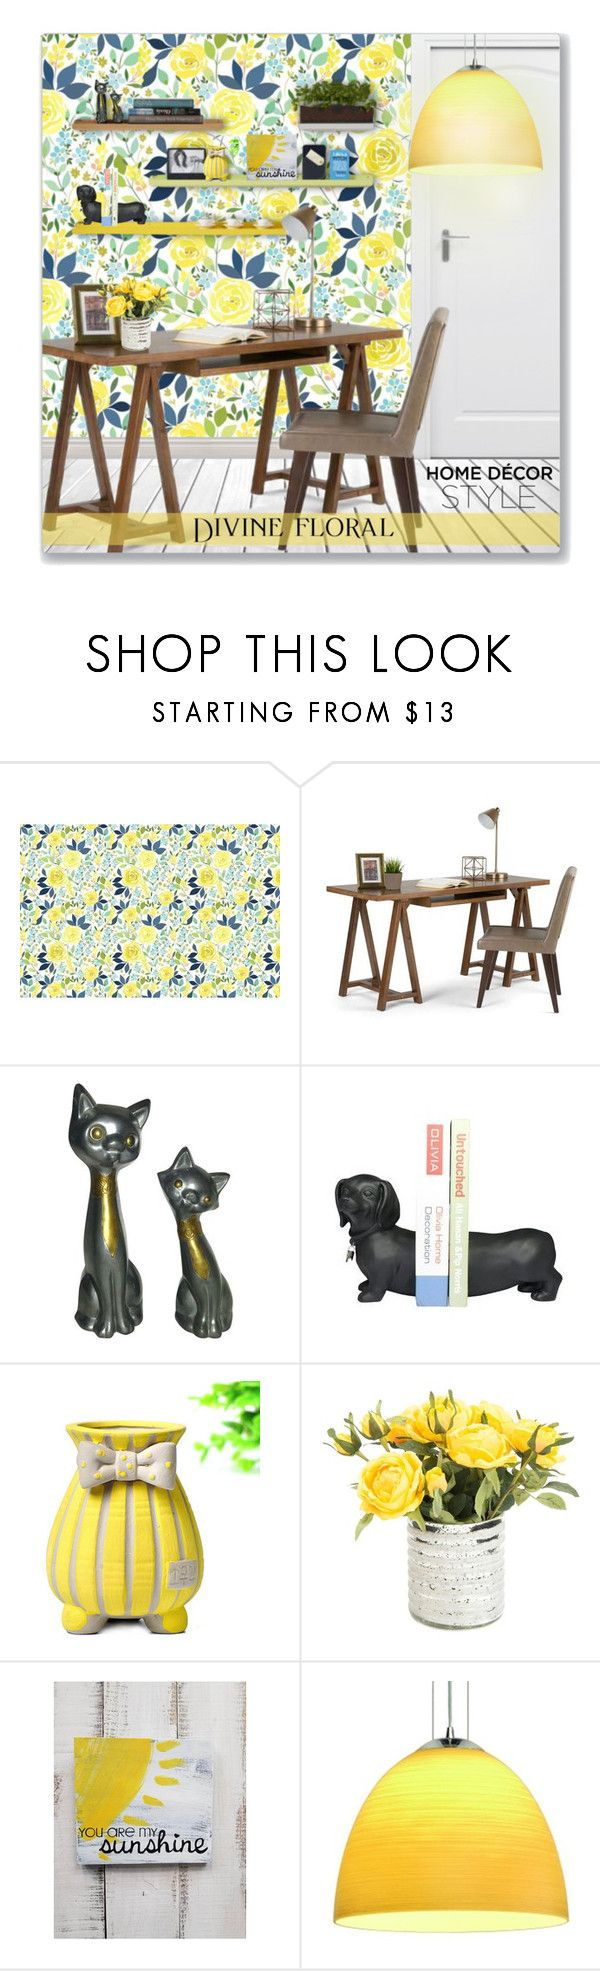 """""""You Are My Sunshine - Interior"""" by leanne-mcclean ❤ liked on Polyvore featuring interior, interiors, interior design, home, home decor, interior decorating, WyndenHall, SLV Lighting and Bertoni"""